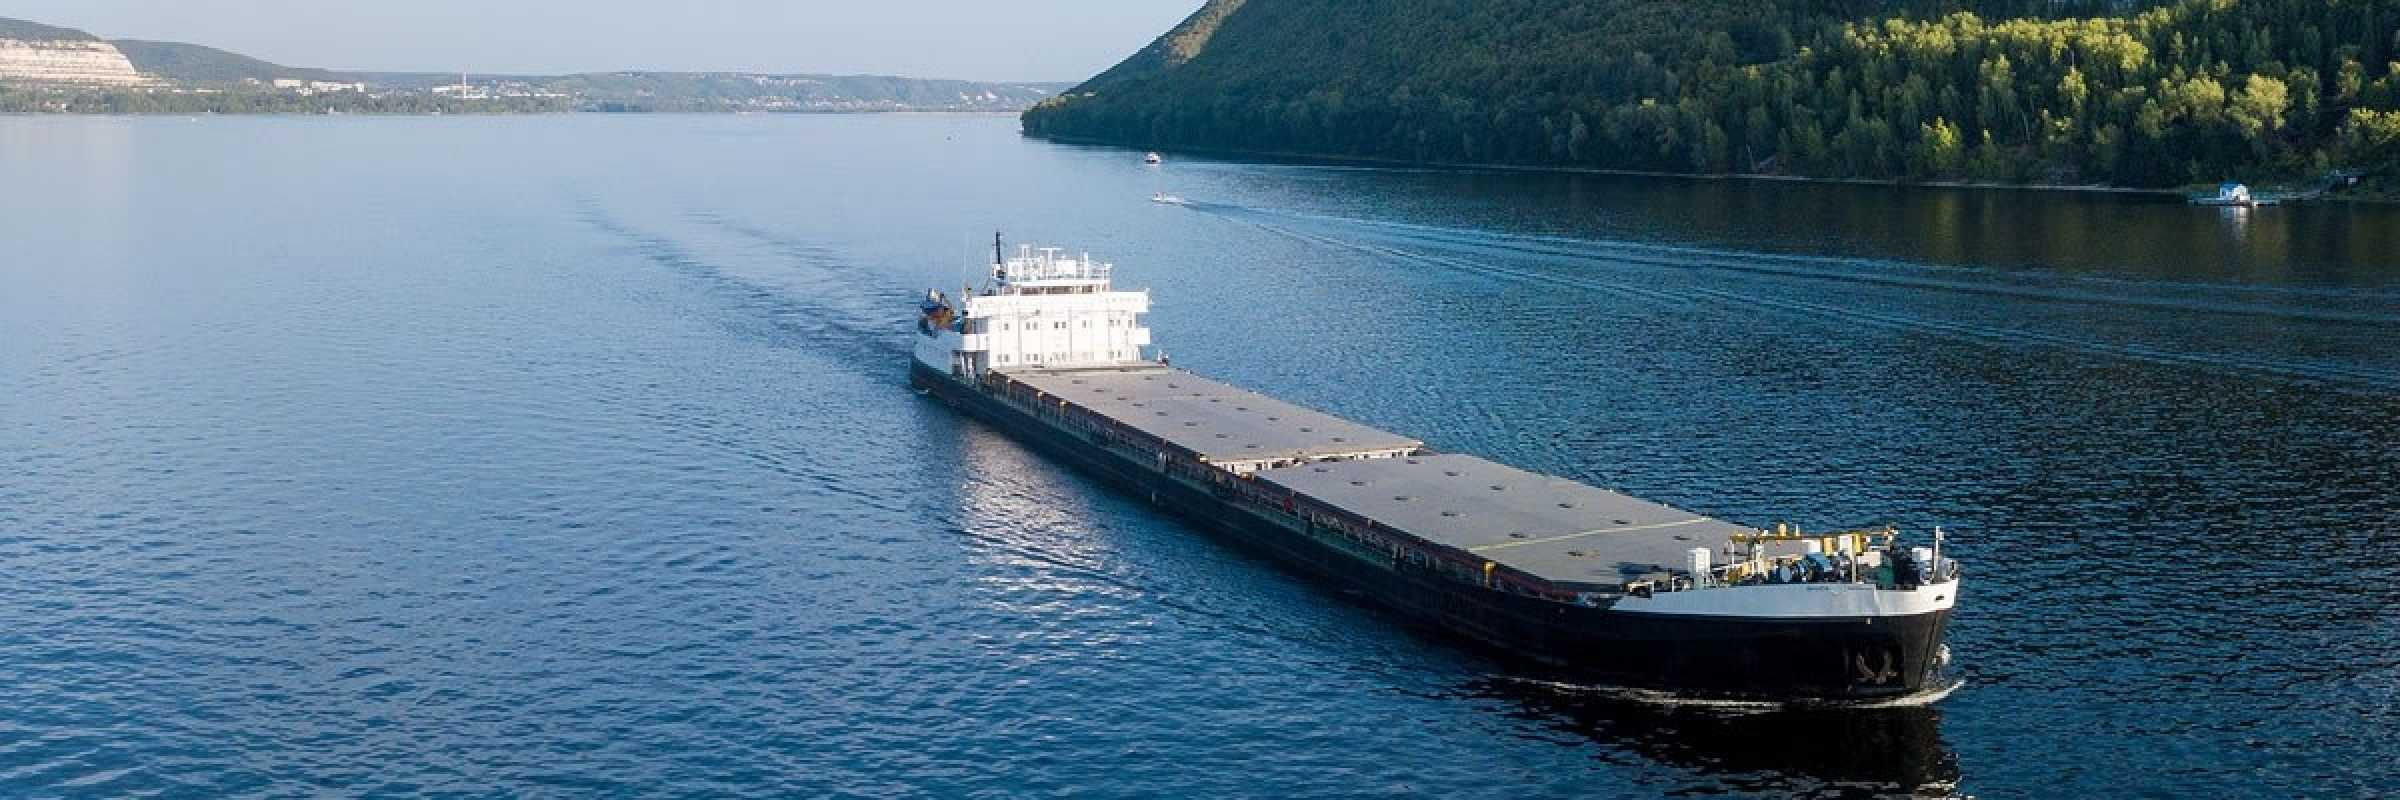 DNV GL links with Koreans on reducing shipping's GHG